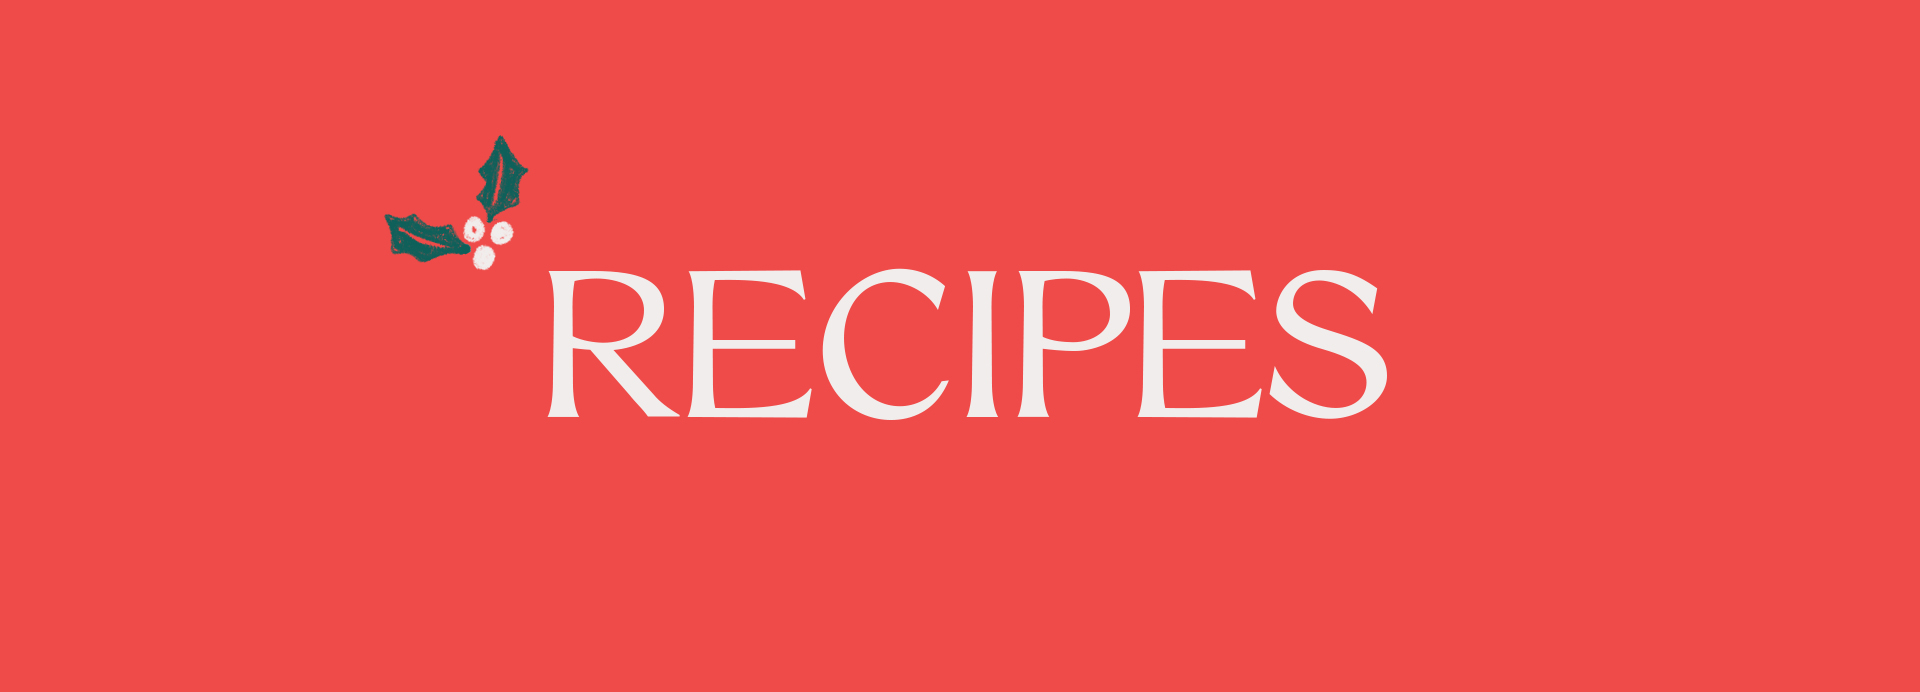 recipes_1920x692